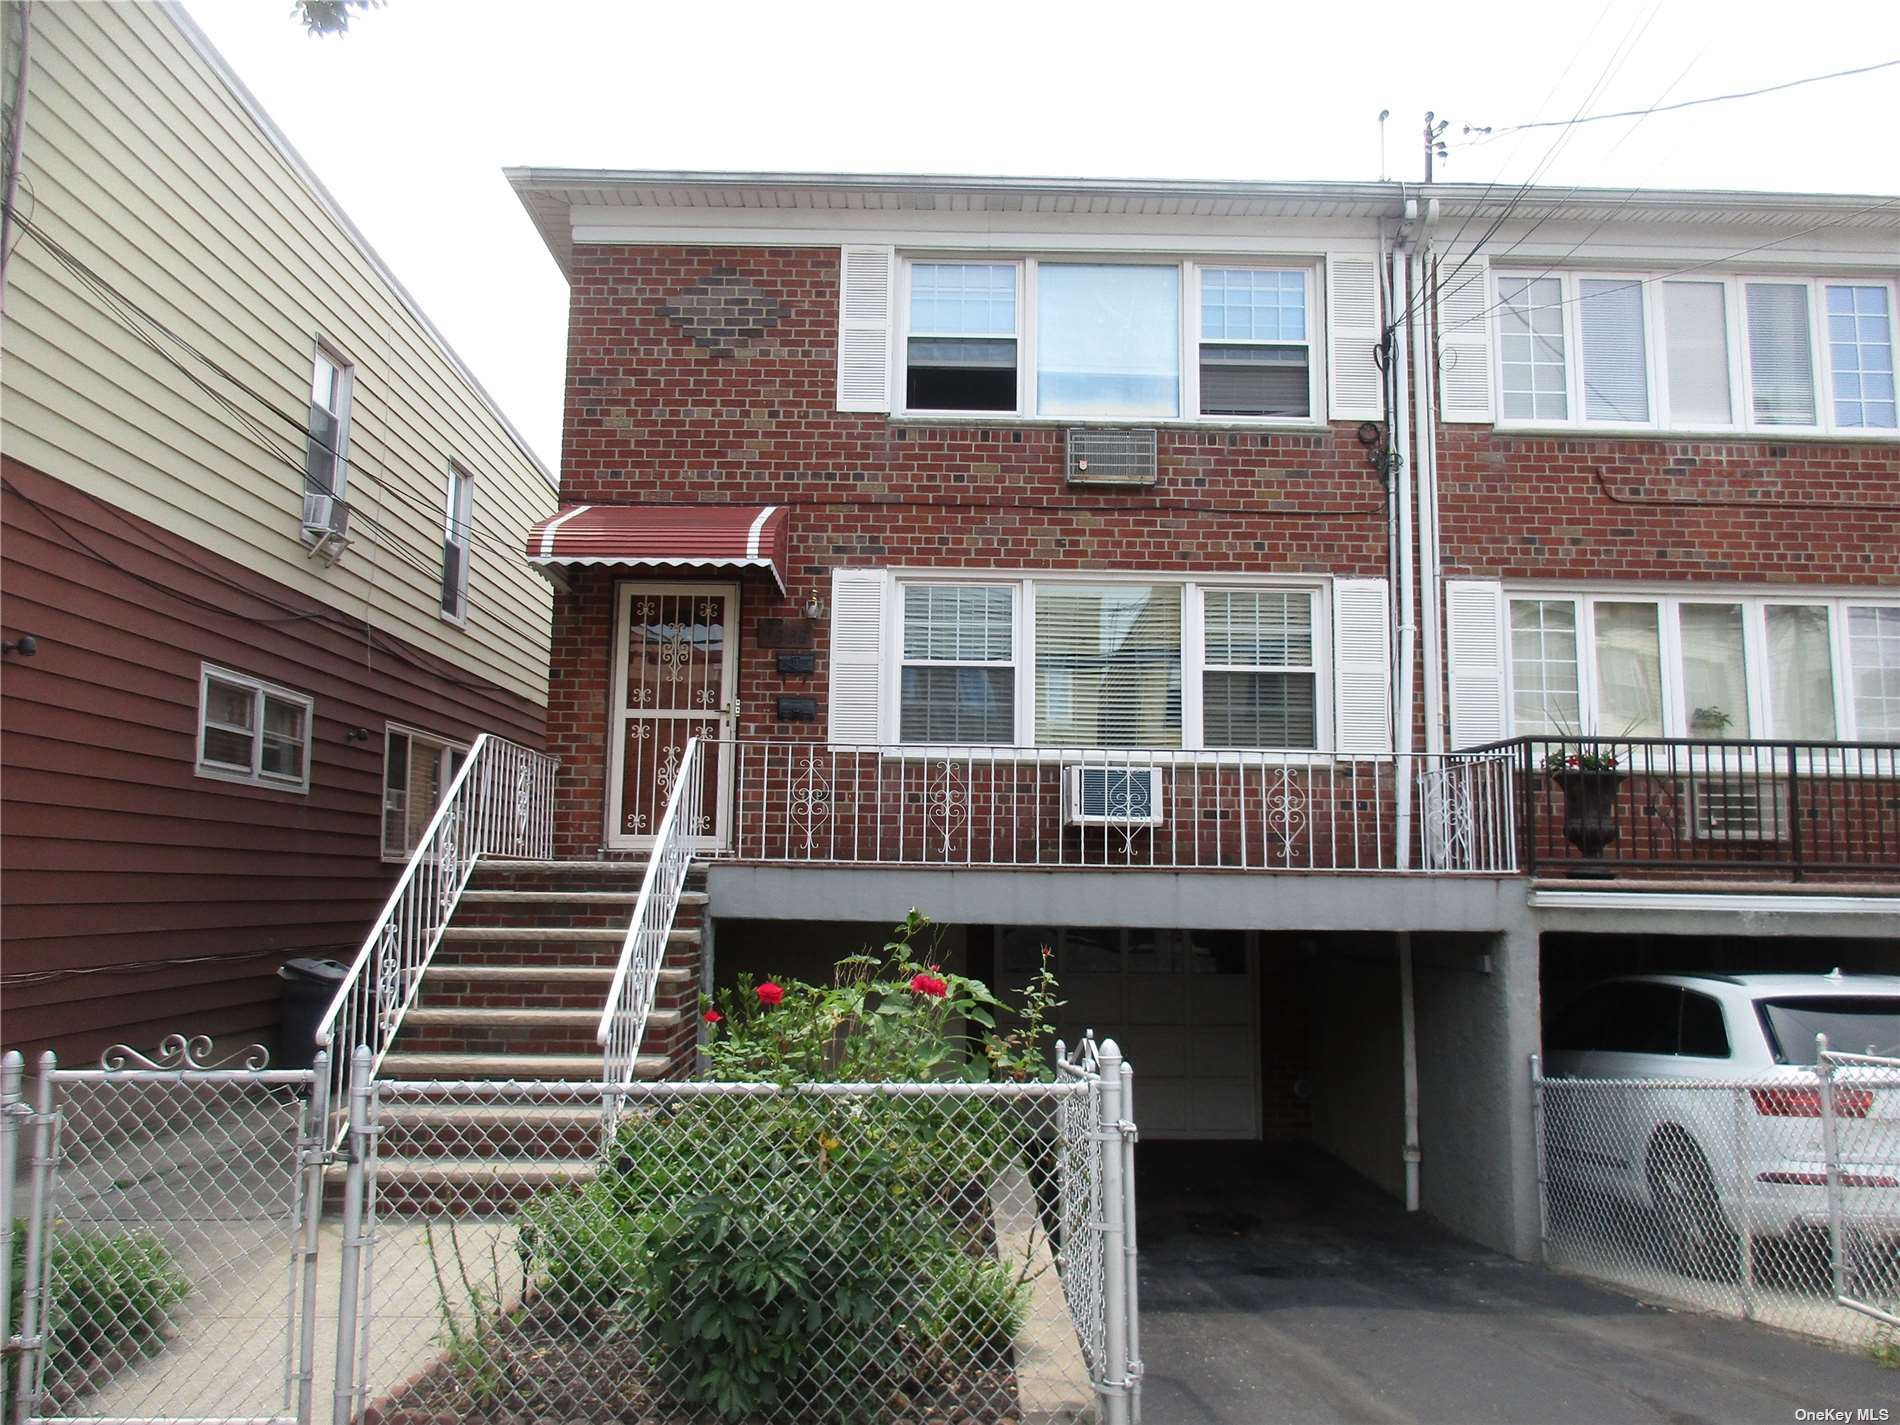 73-38 67th Dr., Middle Village, NY 11379 - MLS#: 3332529